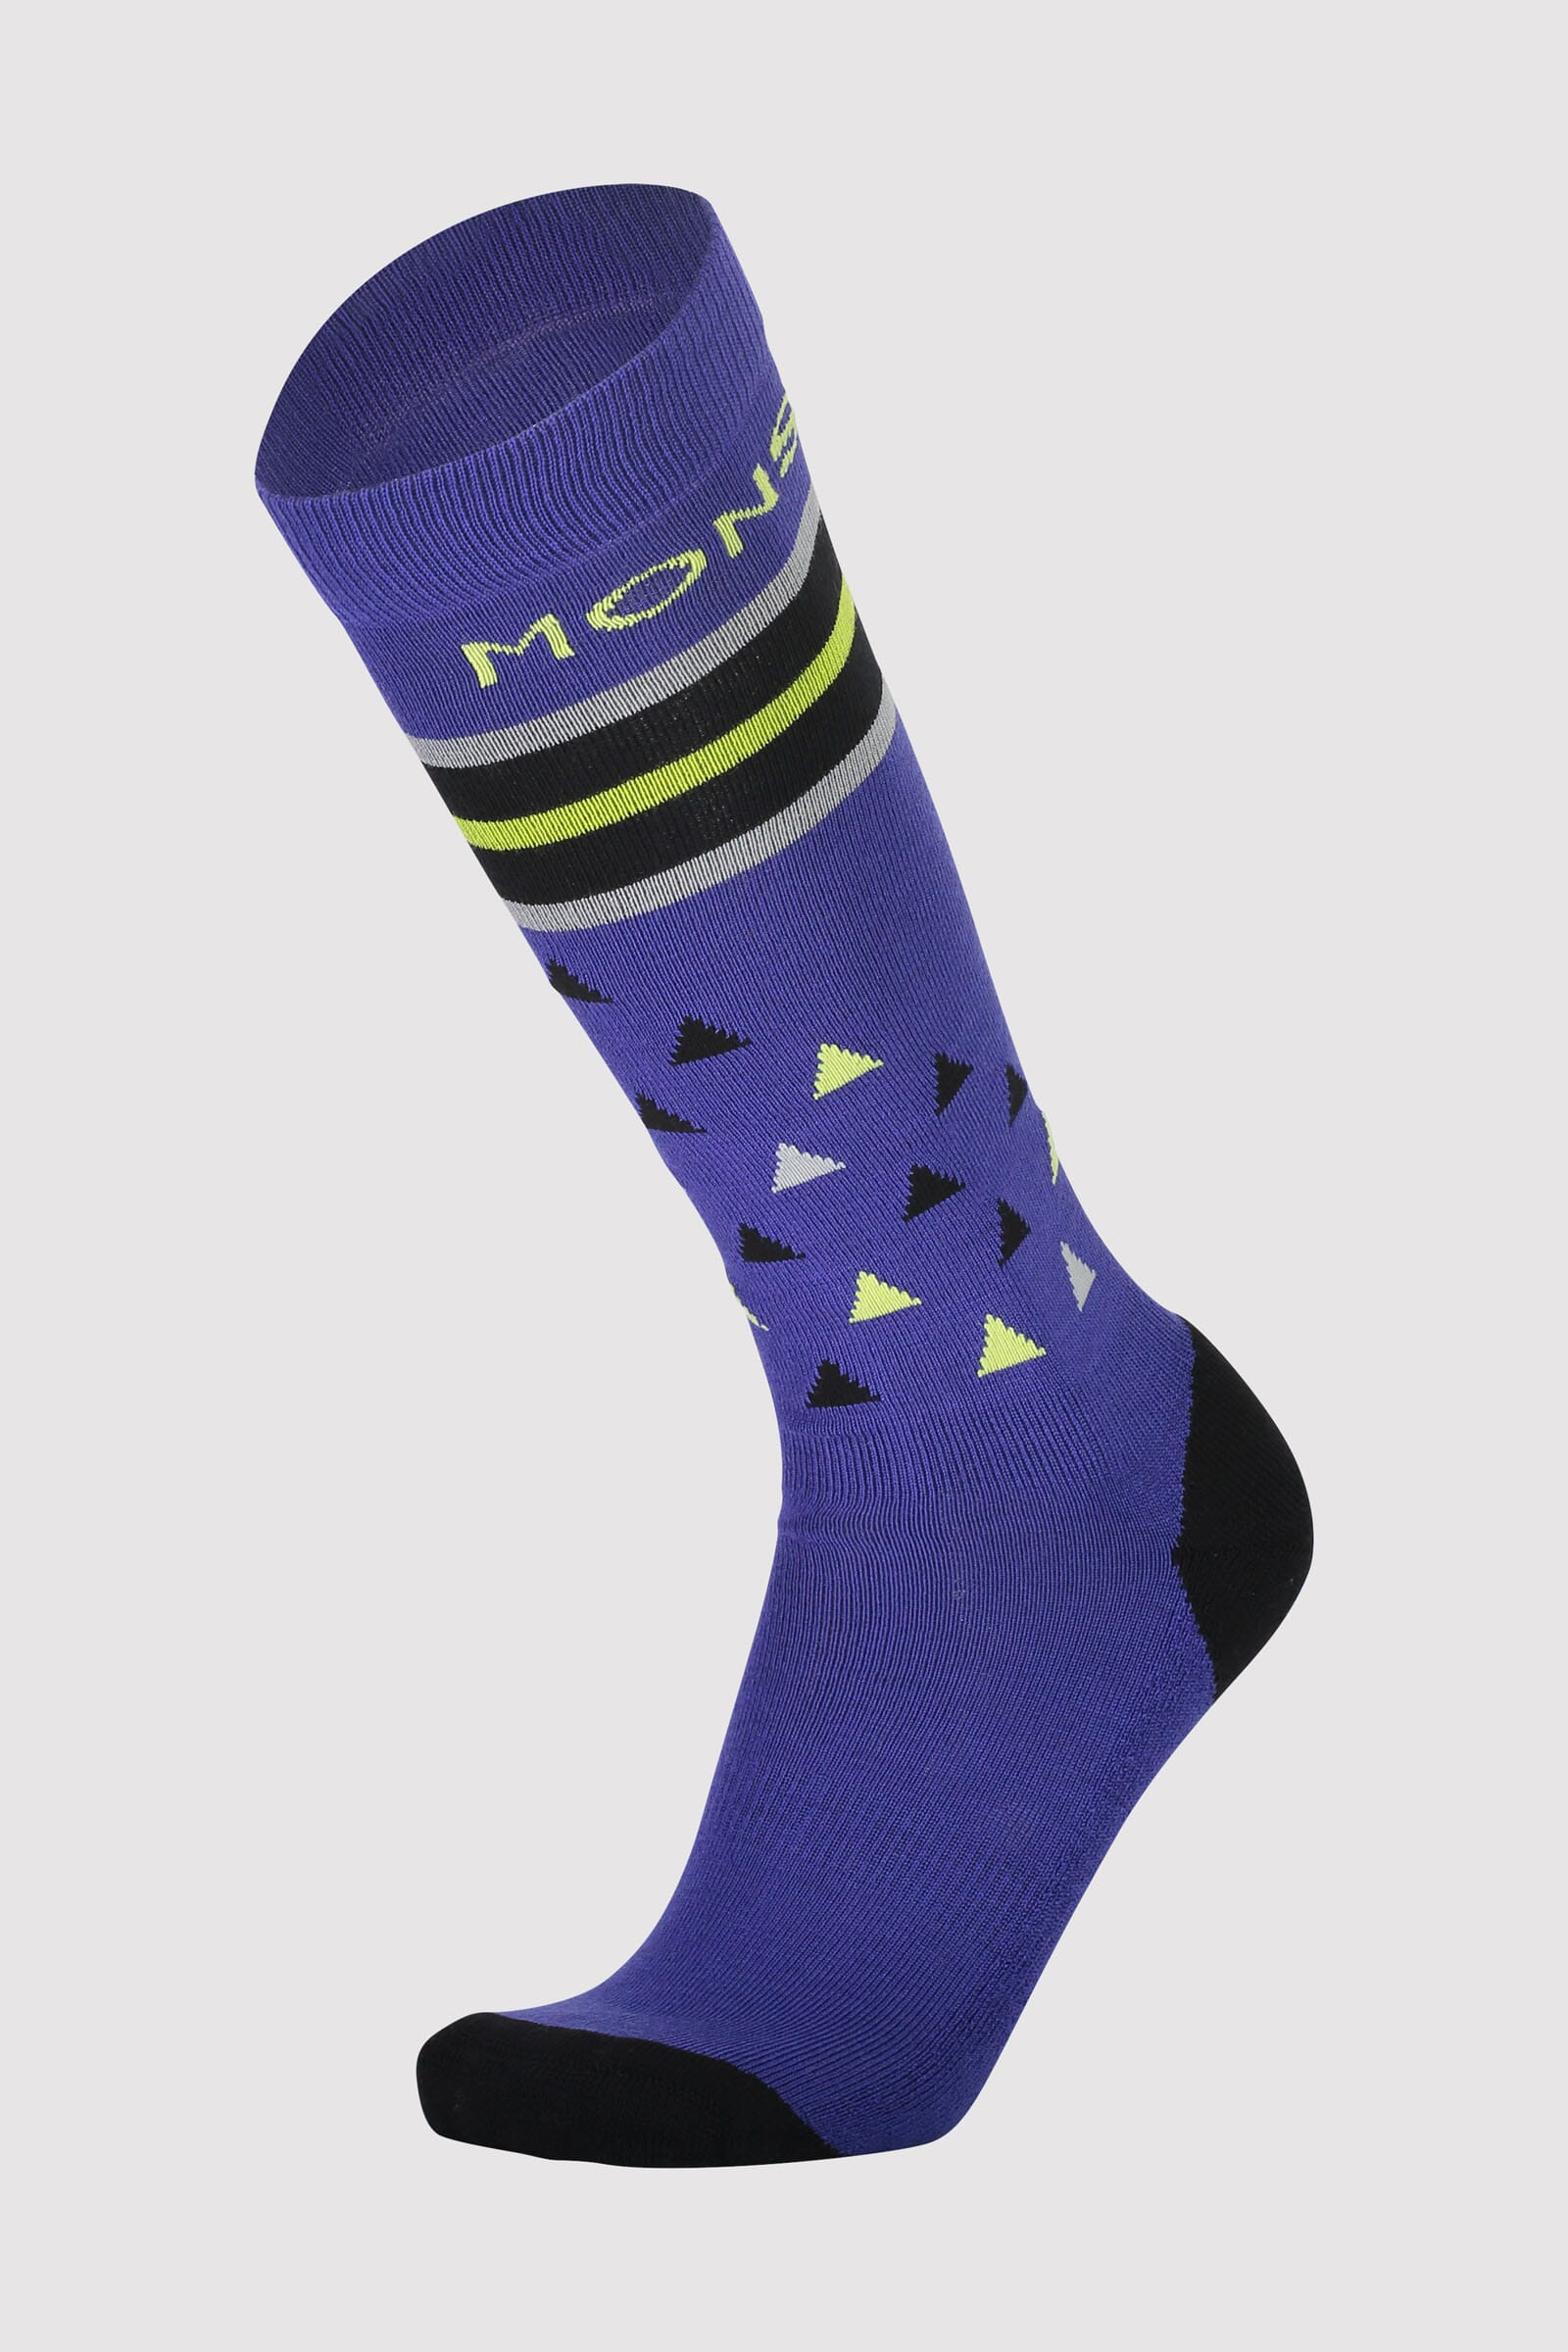 Lift Access Sock - Ultra Blue / Black